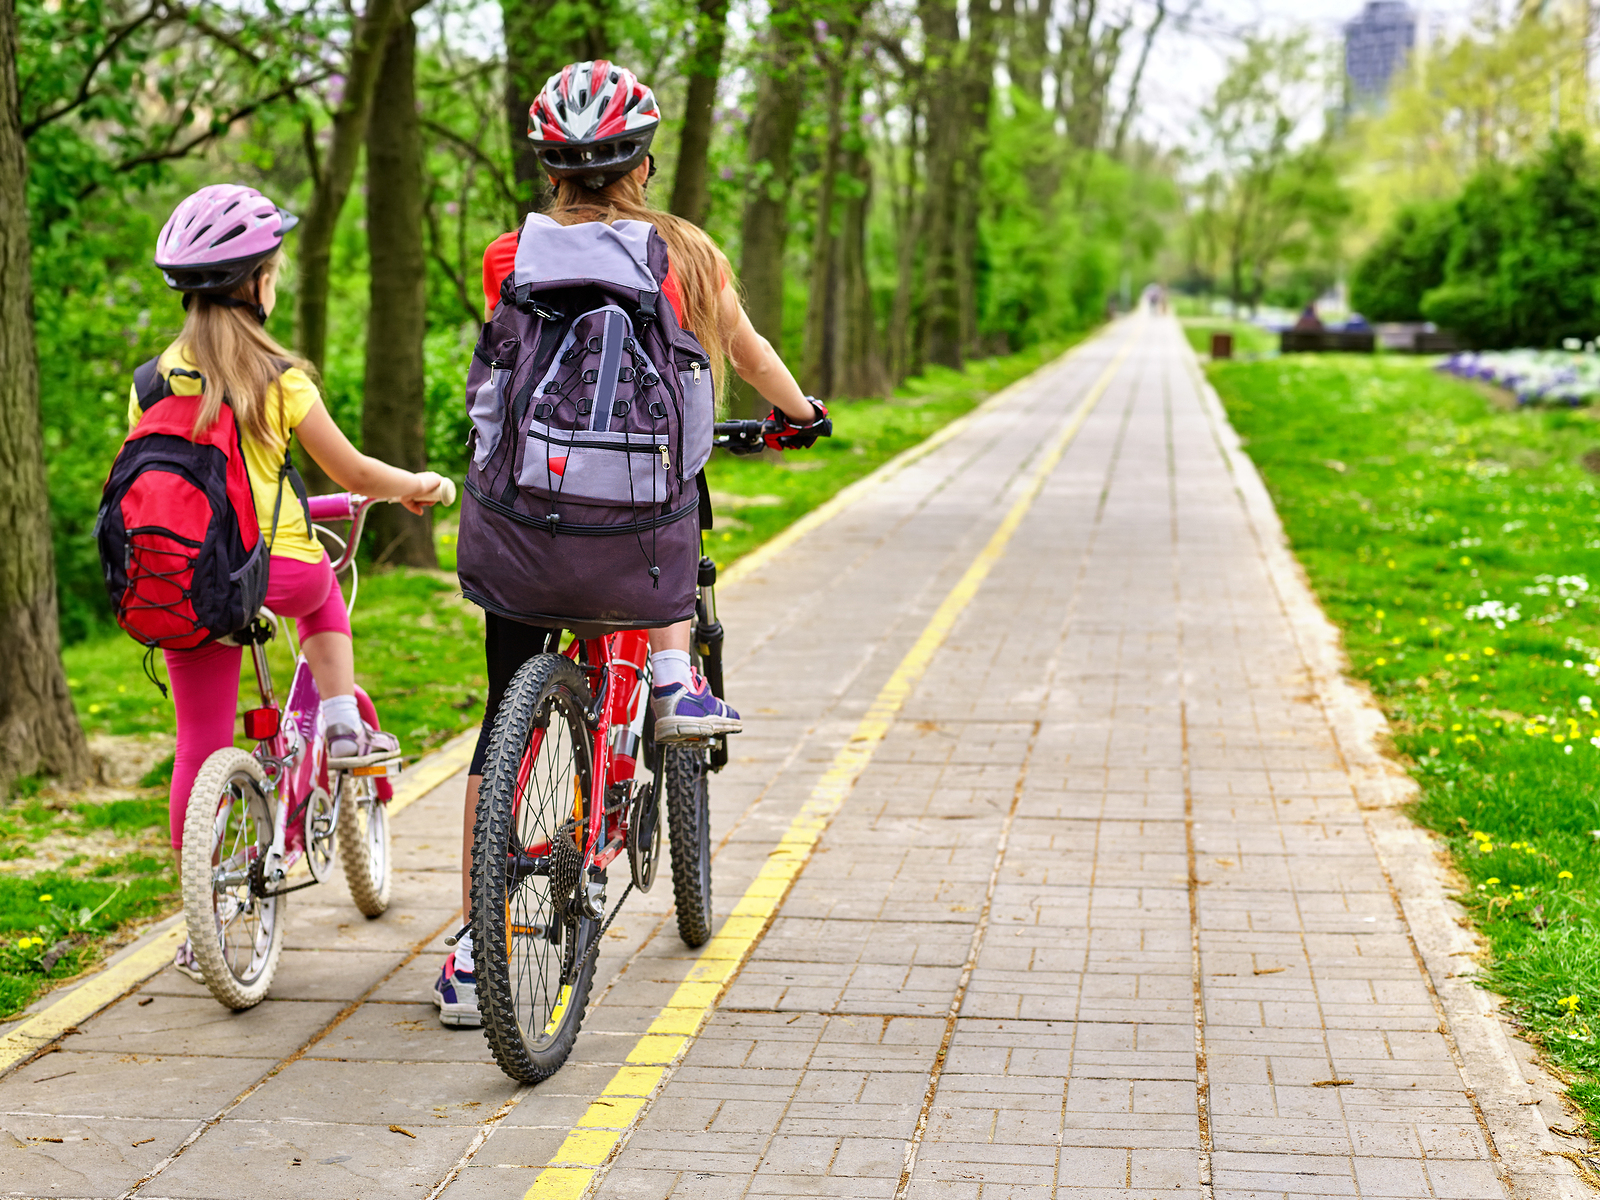 Bicycle Lanes Evolve Move Away From Cars For Fewer